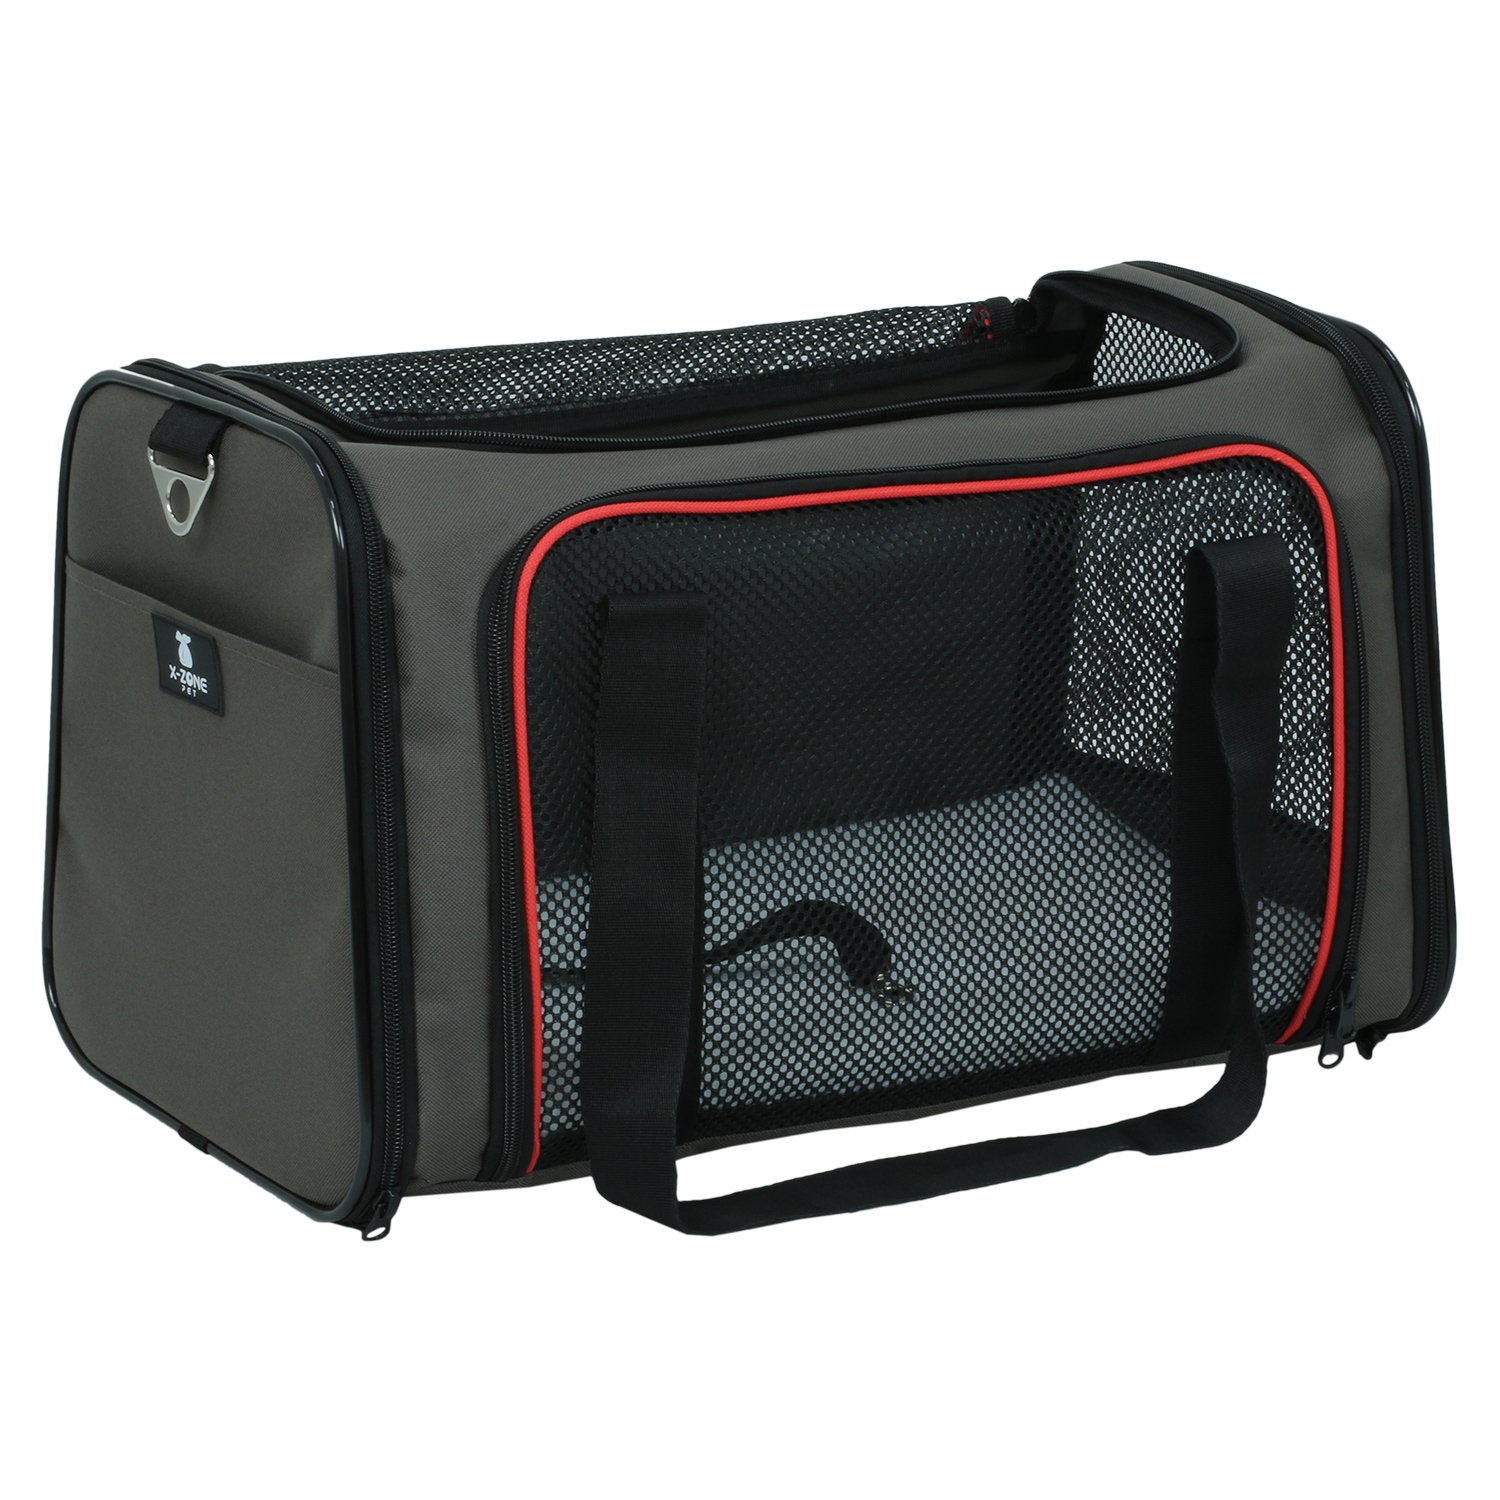 X-ZONE PET Airline Approved Pet Carriers, Soft Sided collapsible Pet travel Carrier for medium puppy and cats